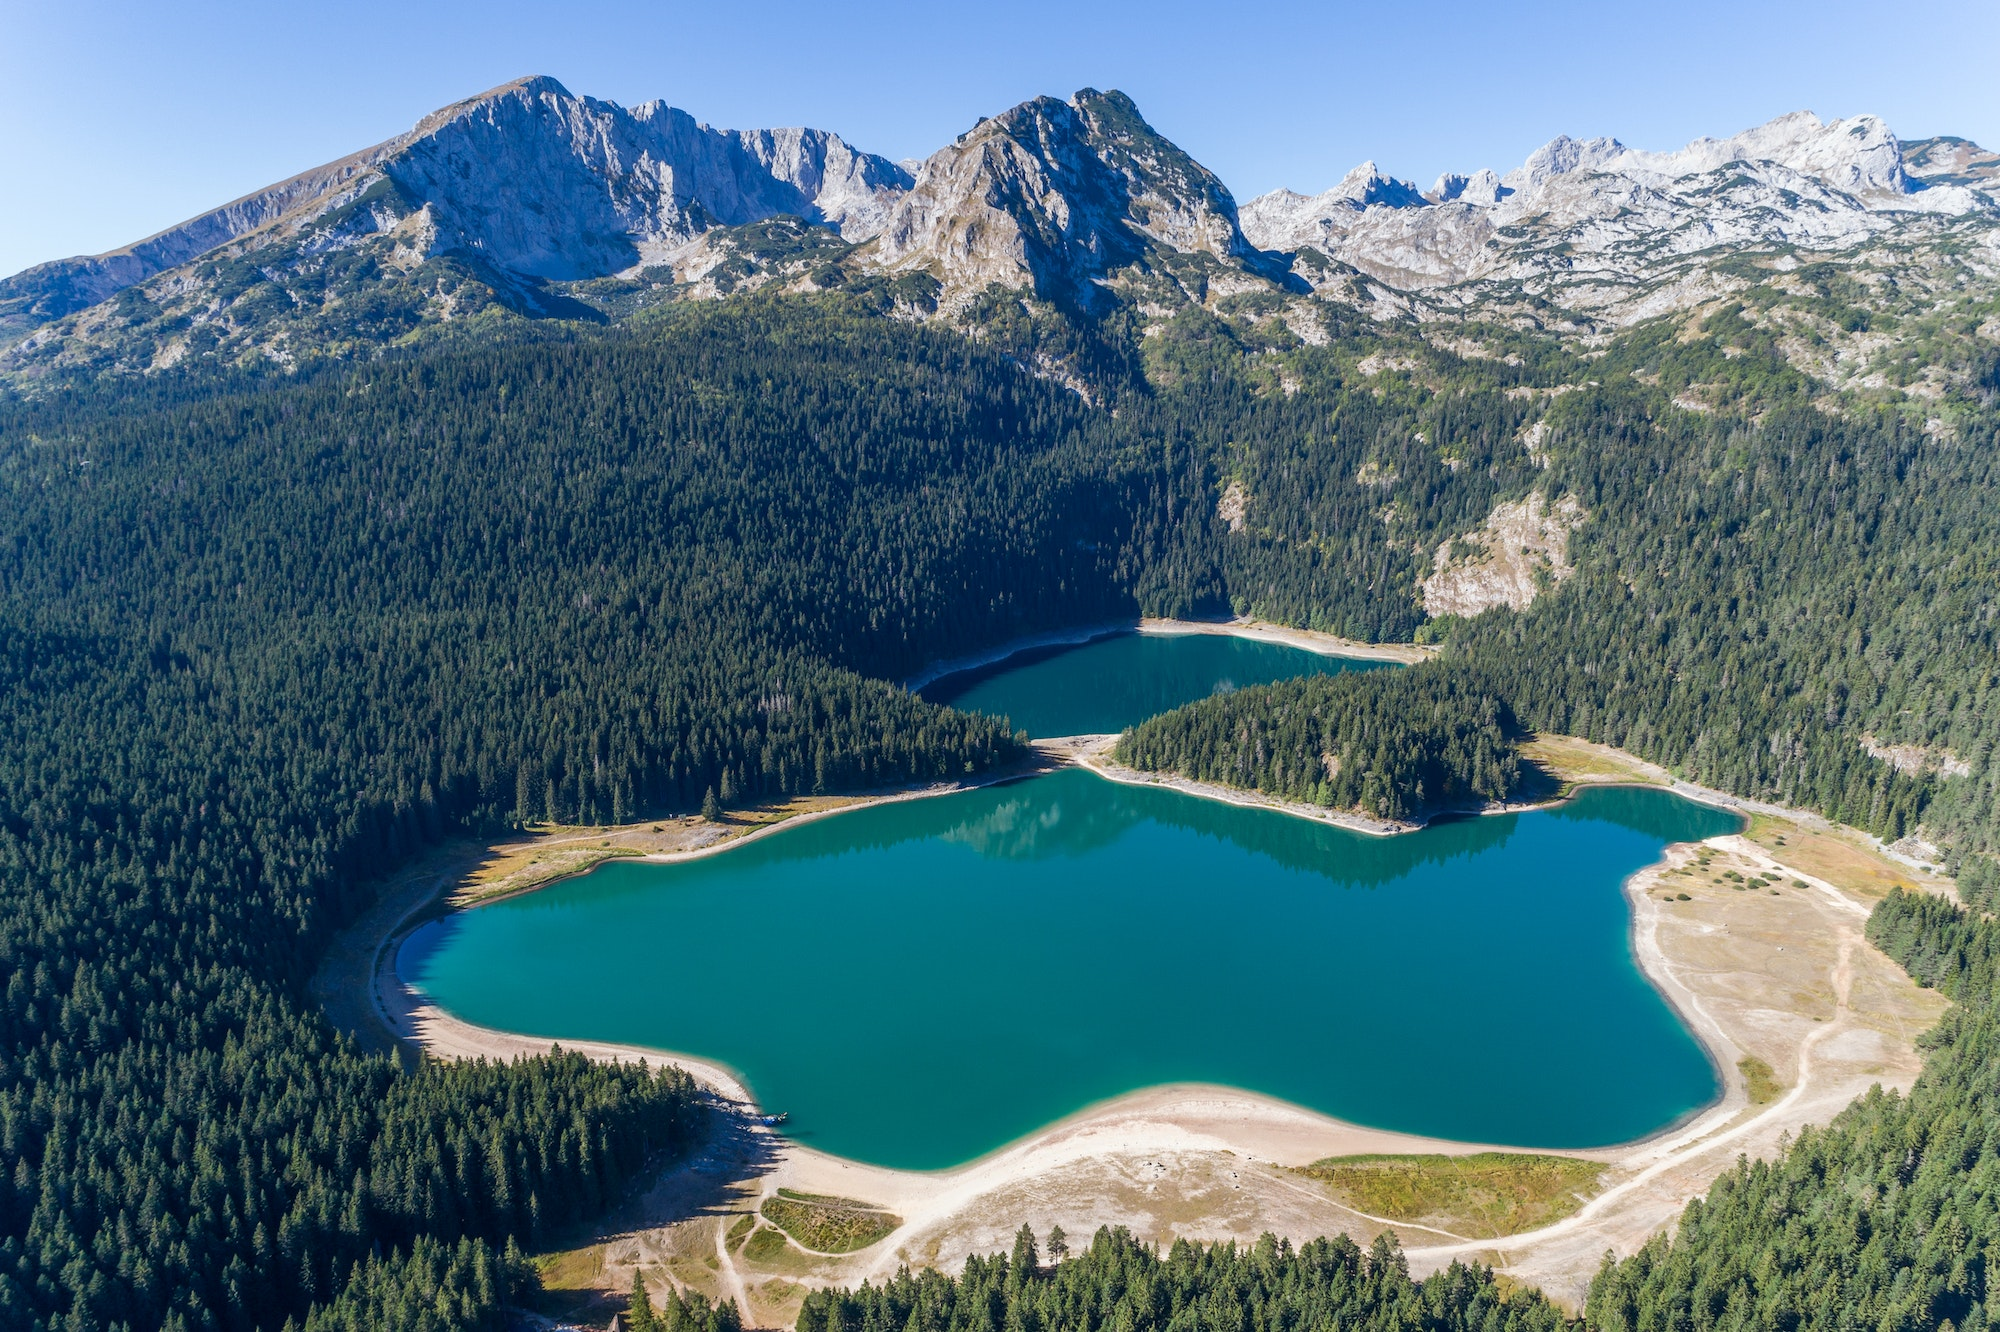 The glacial Black Lake is located at an elevation of 4,645 feet on Mount Durmitor.